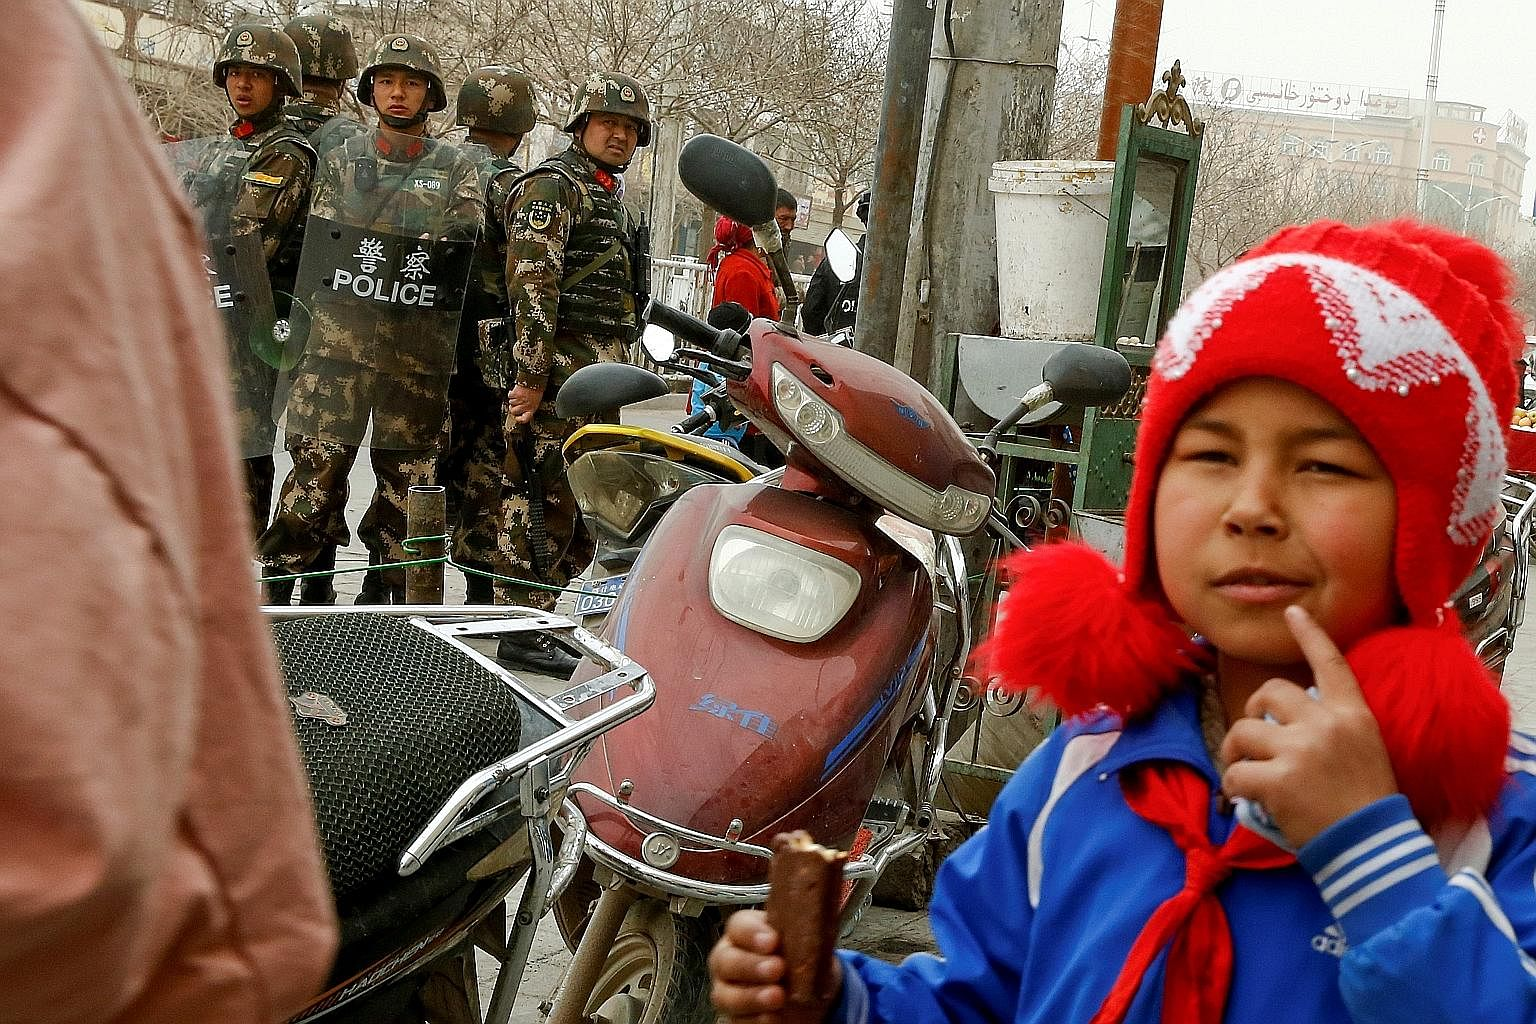 Security personnel in Kashgar city, in the Xinjiang Uighur Autonomous Region of China. The writer says it is true that Chinese Muslims are subject to greater surveillance, but they also receive some preferential exemptions. For example, the on